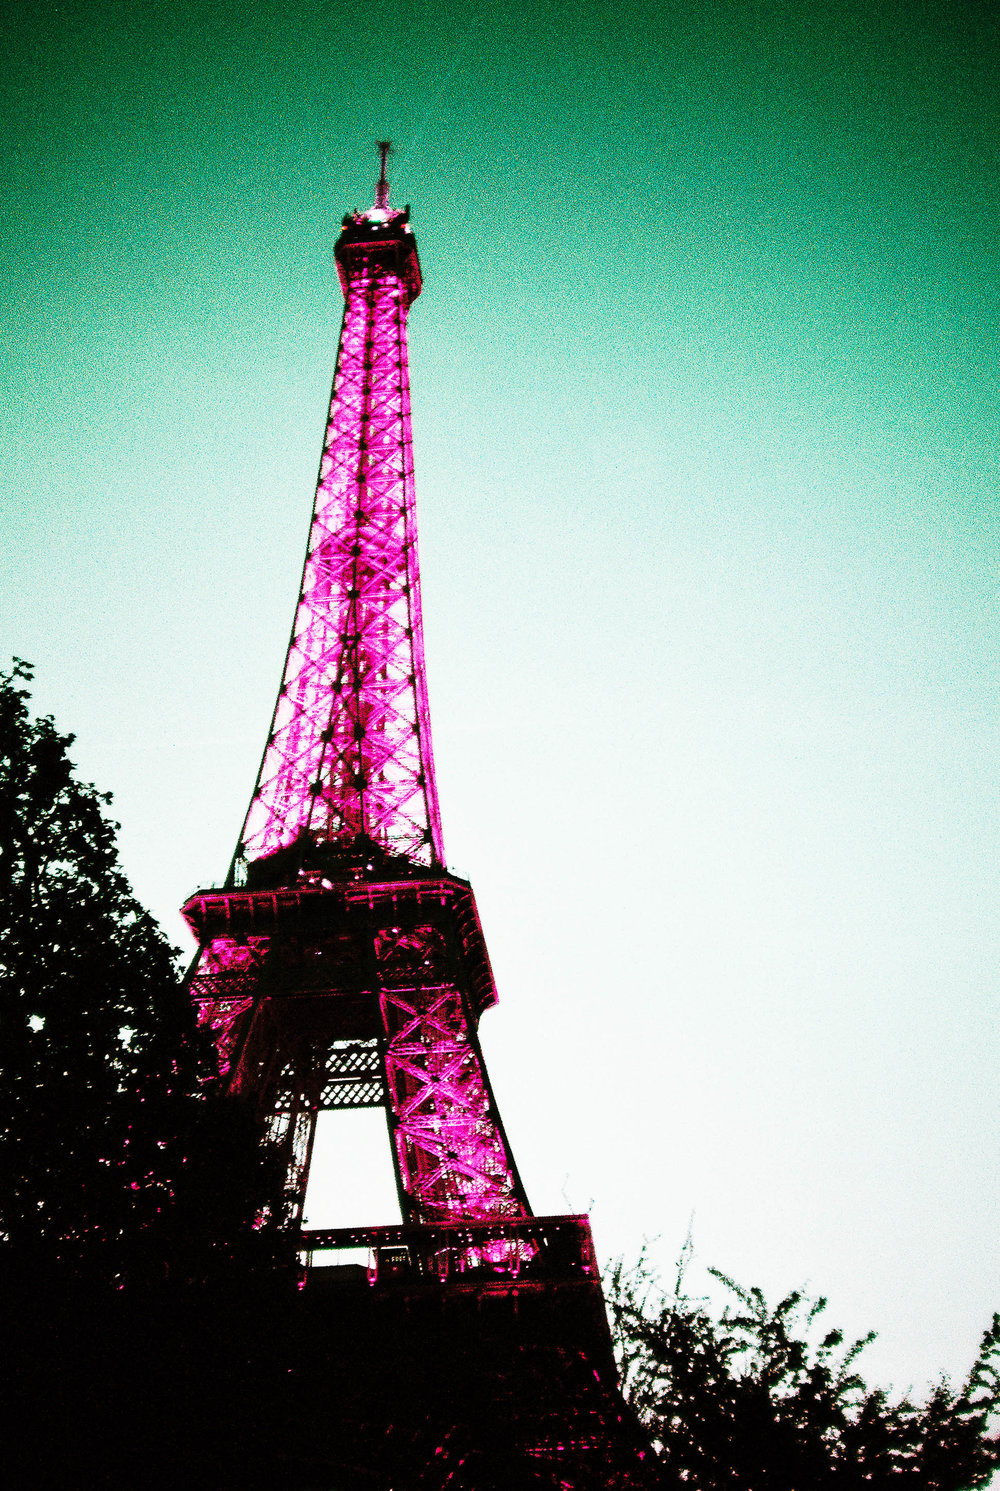 The Eiffel Tower at night on that Lomo Purple film.